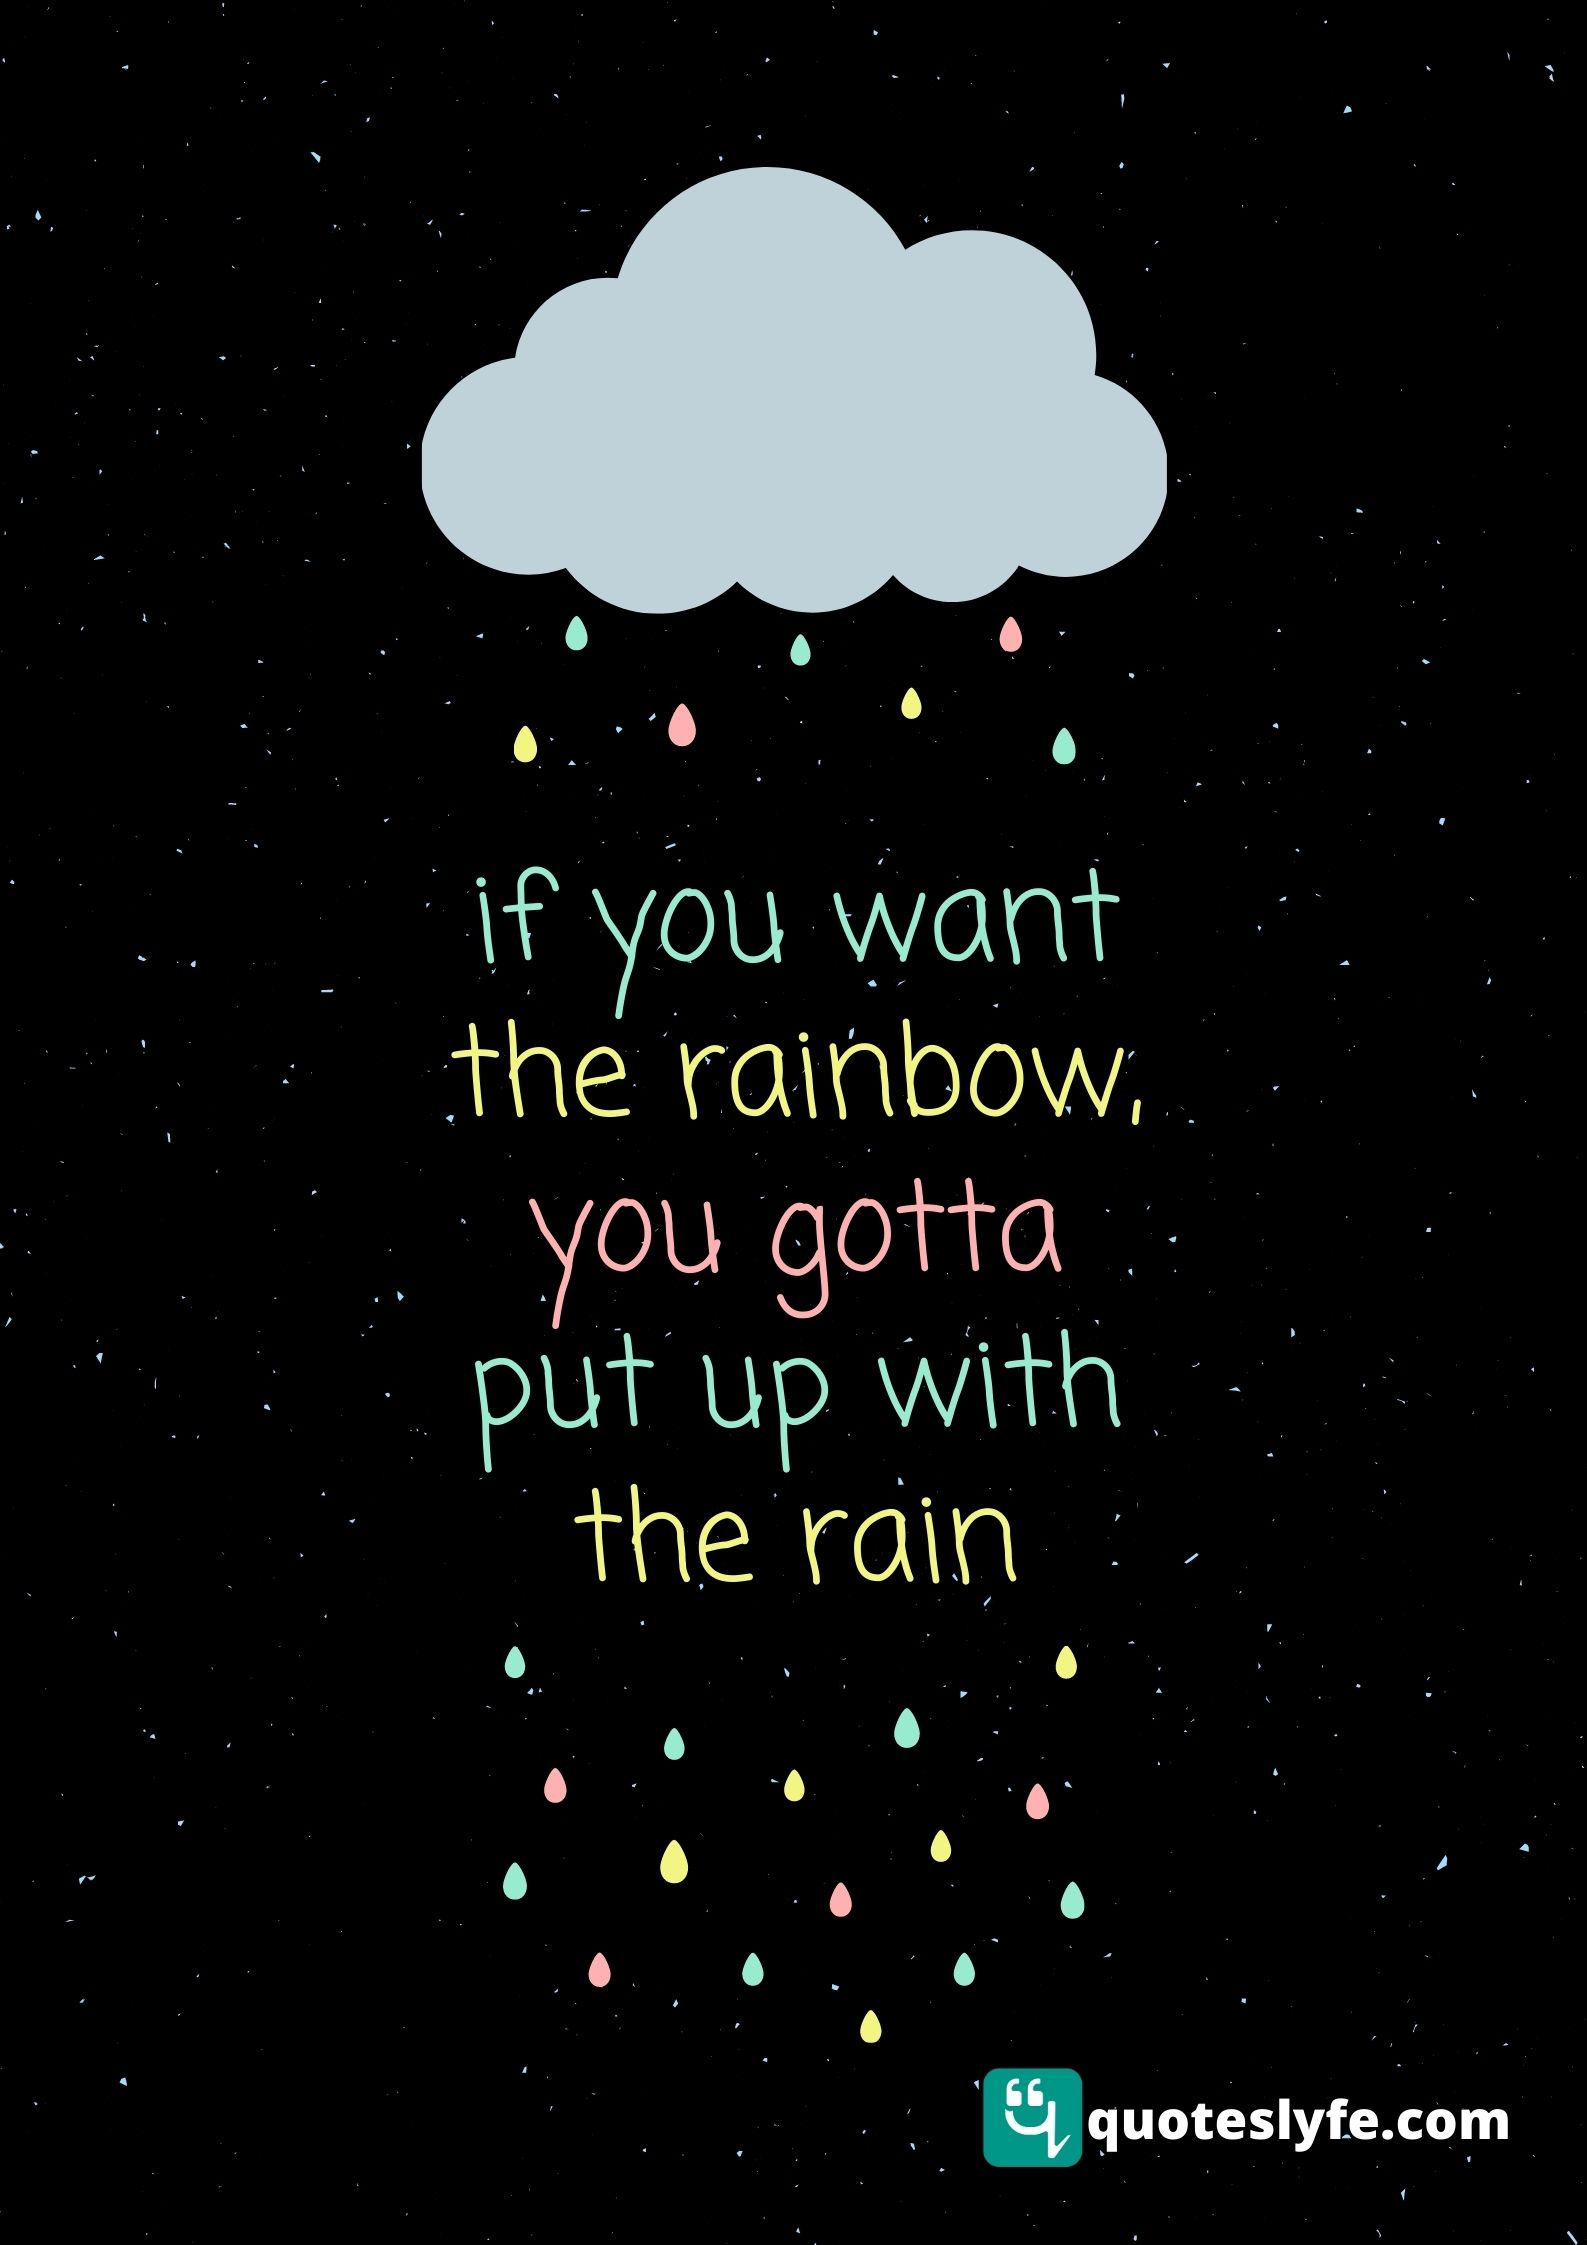 If you want the rainbow you gotta put up with the rain.